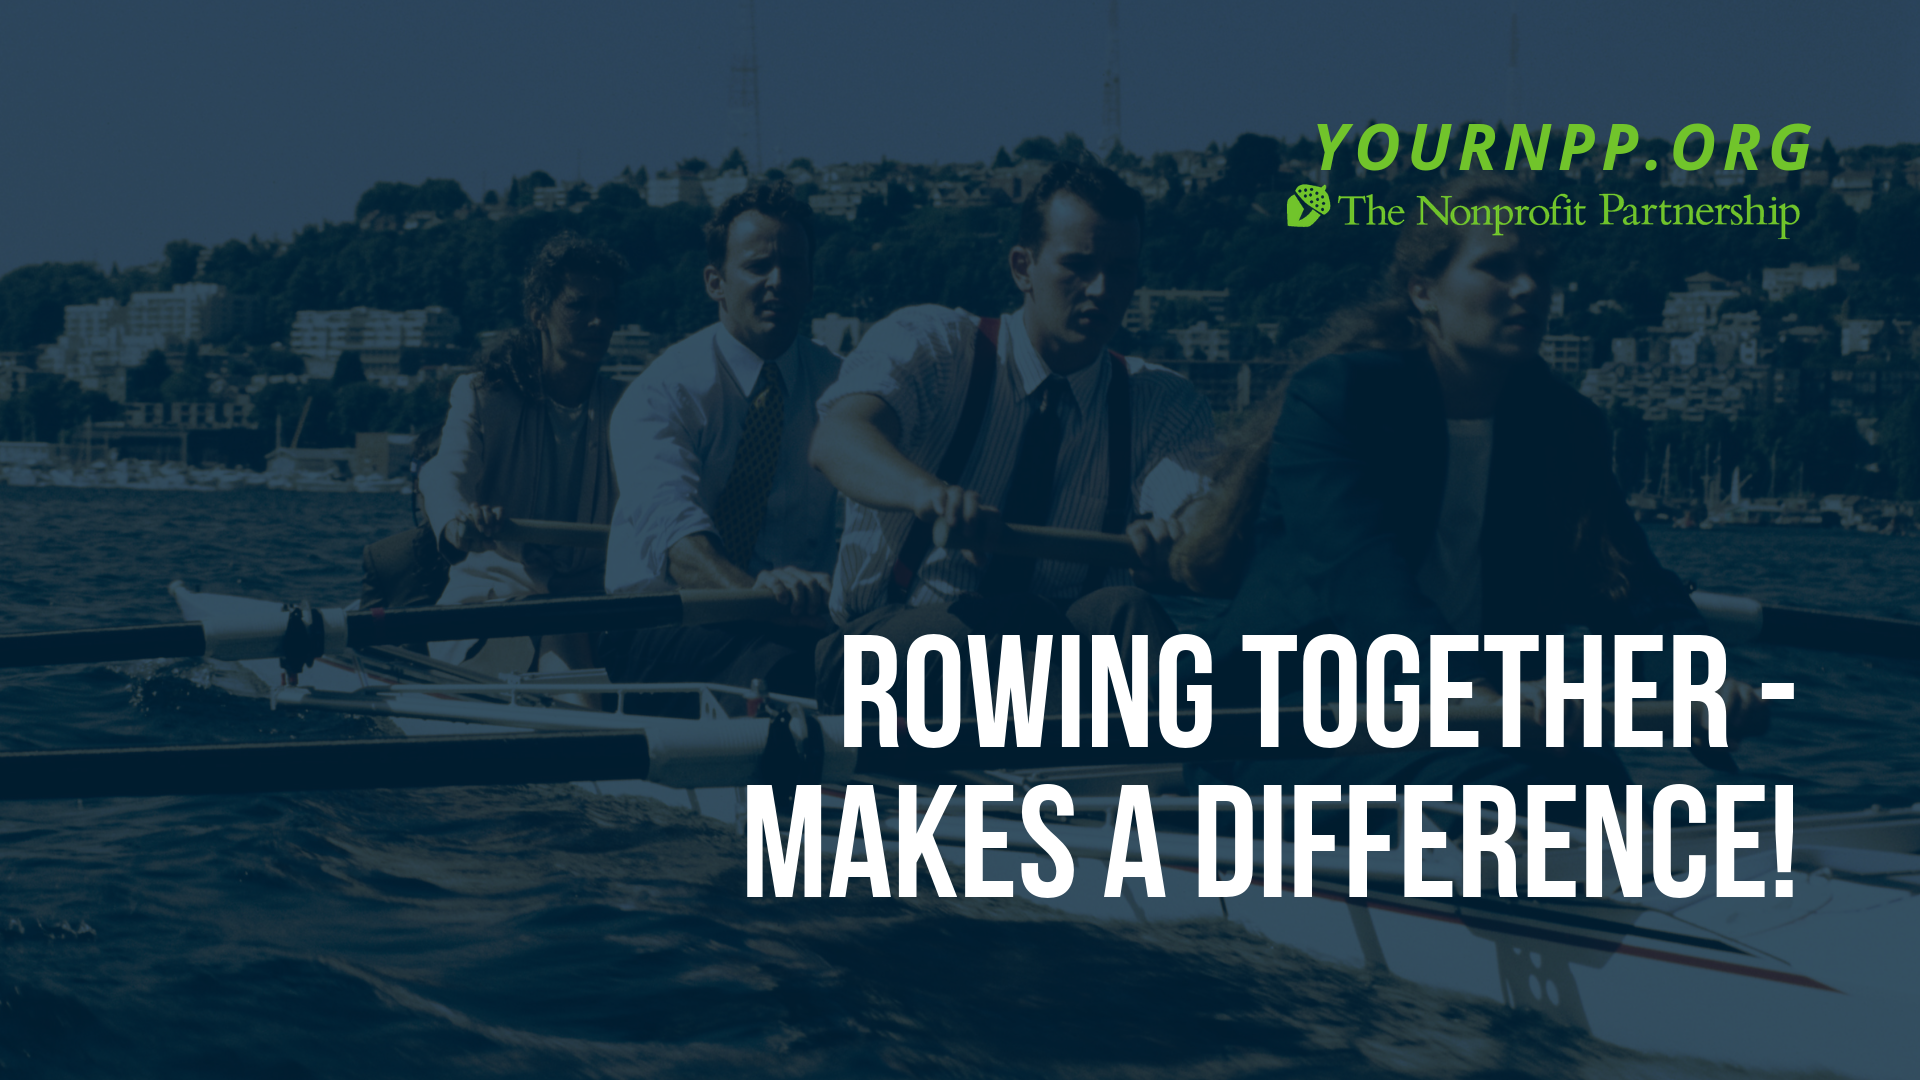 Rowing Together - Makes a Difference!